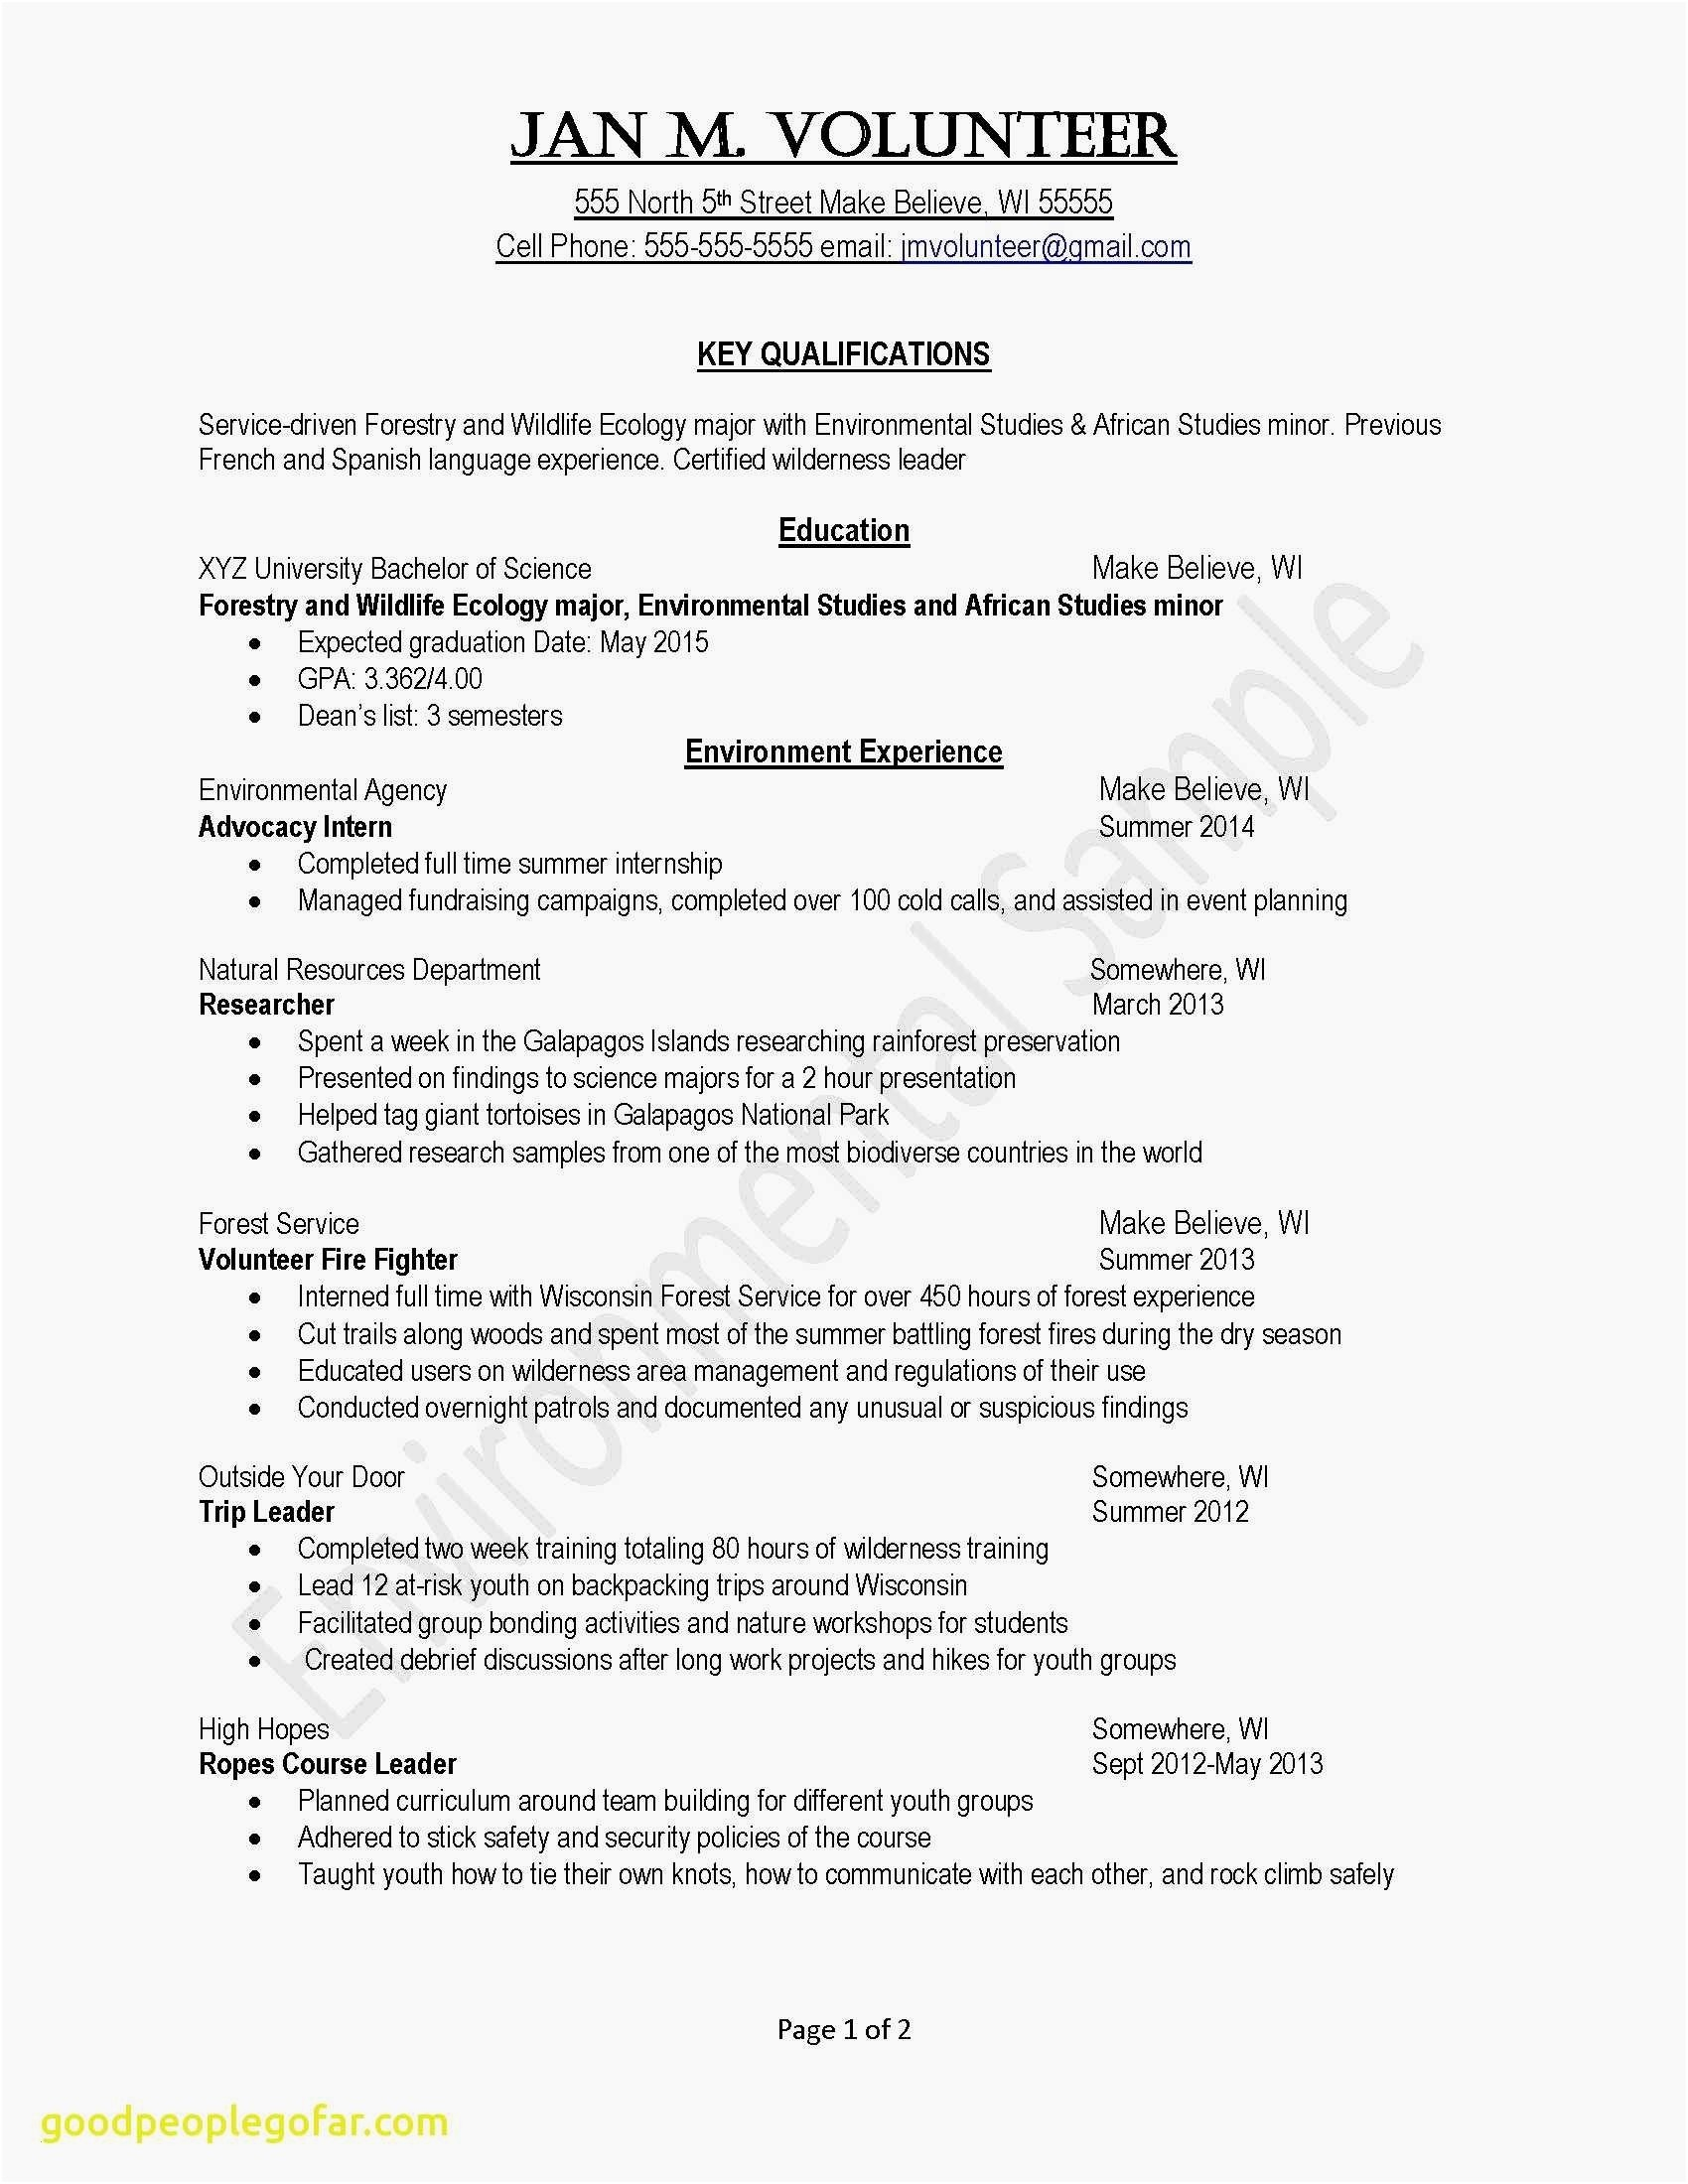 teacher resume template download example-Inspirational Examples Resumes Ecologist Resume 0d Teacher Resume Template Inspirational Examples Resumes Ecologist Resume 0d 17-o